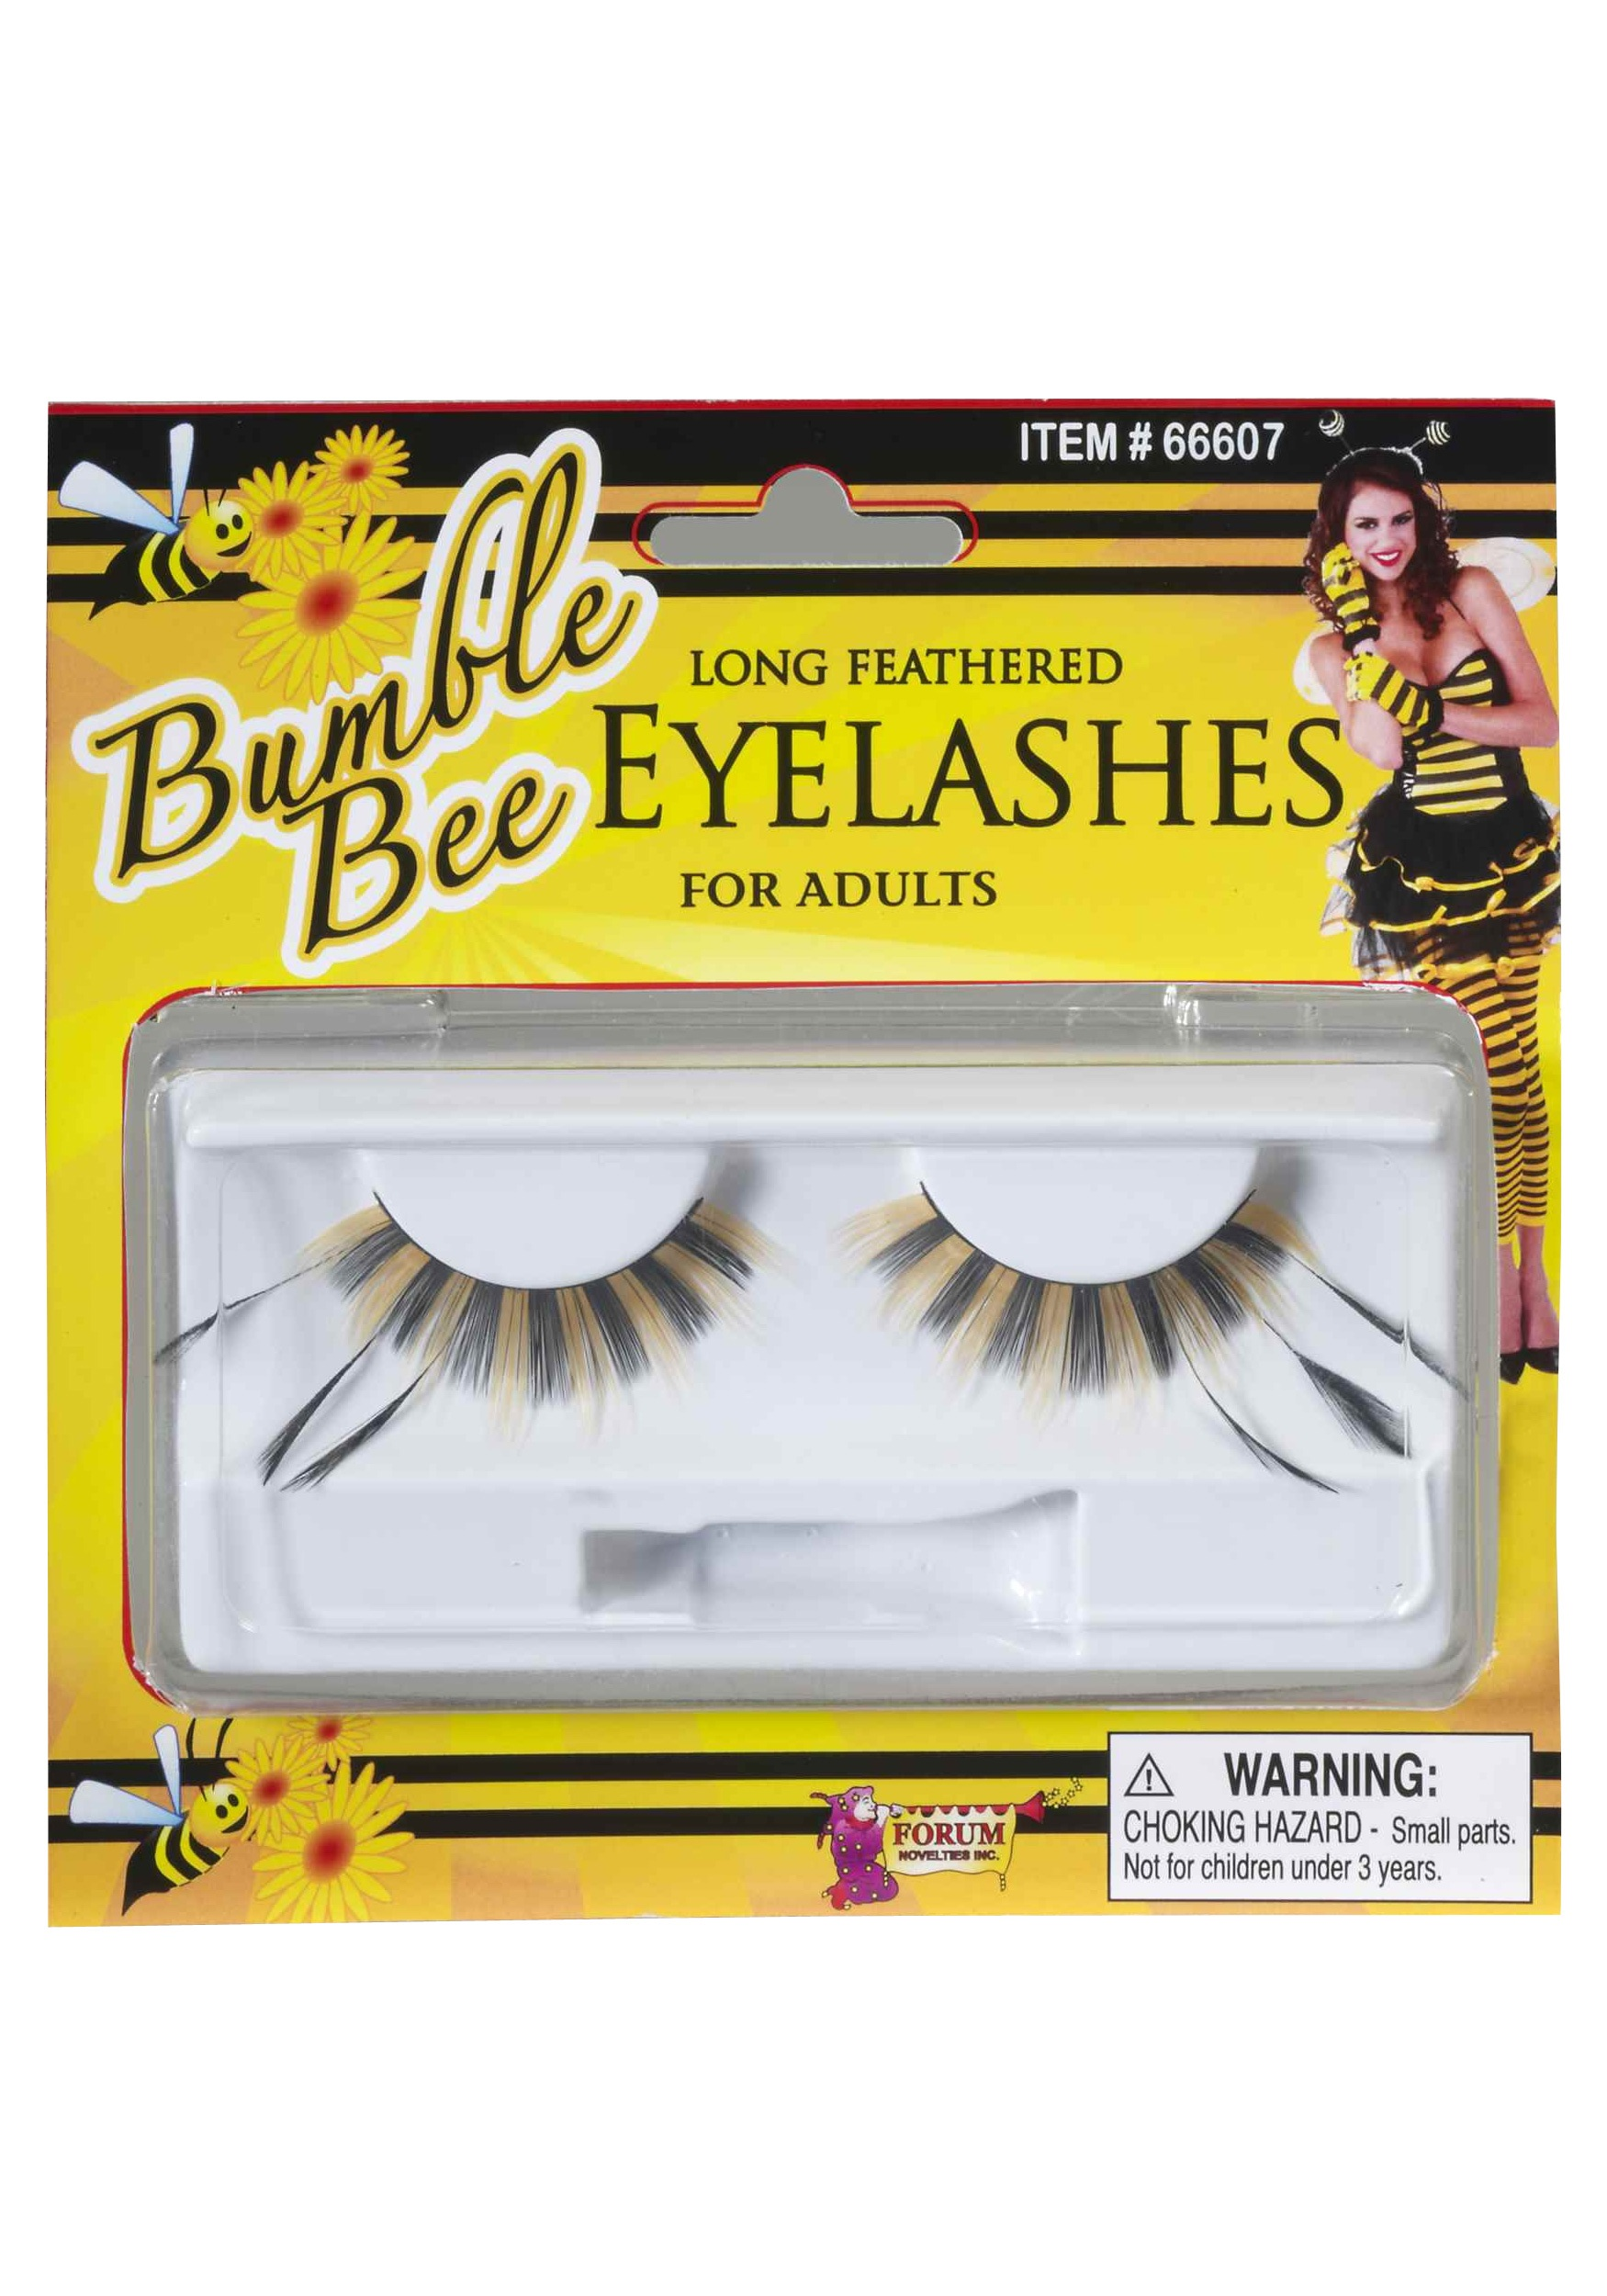 Honey Bee Eyelashes Halloween Costume Ideas 2018